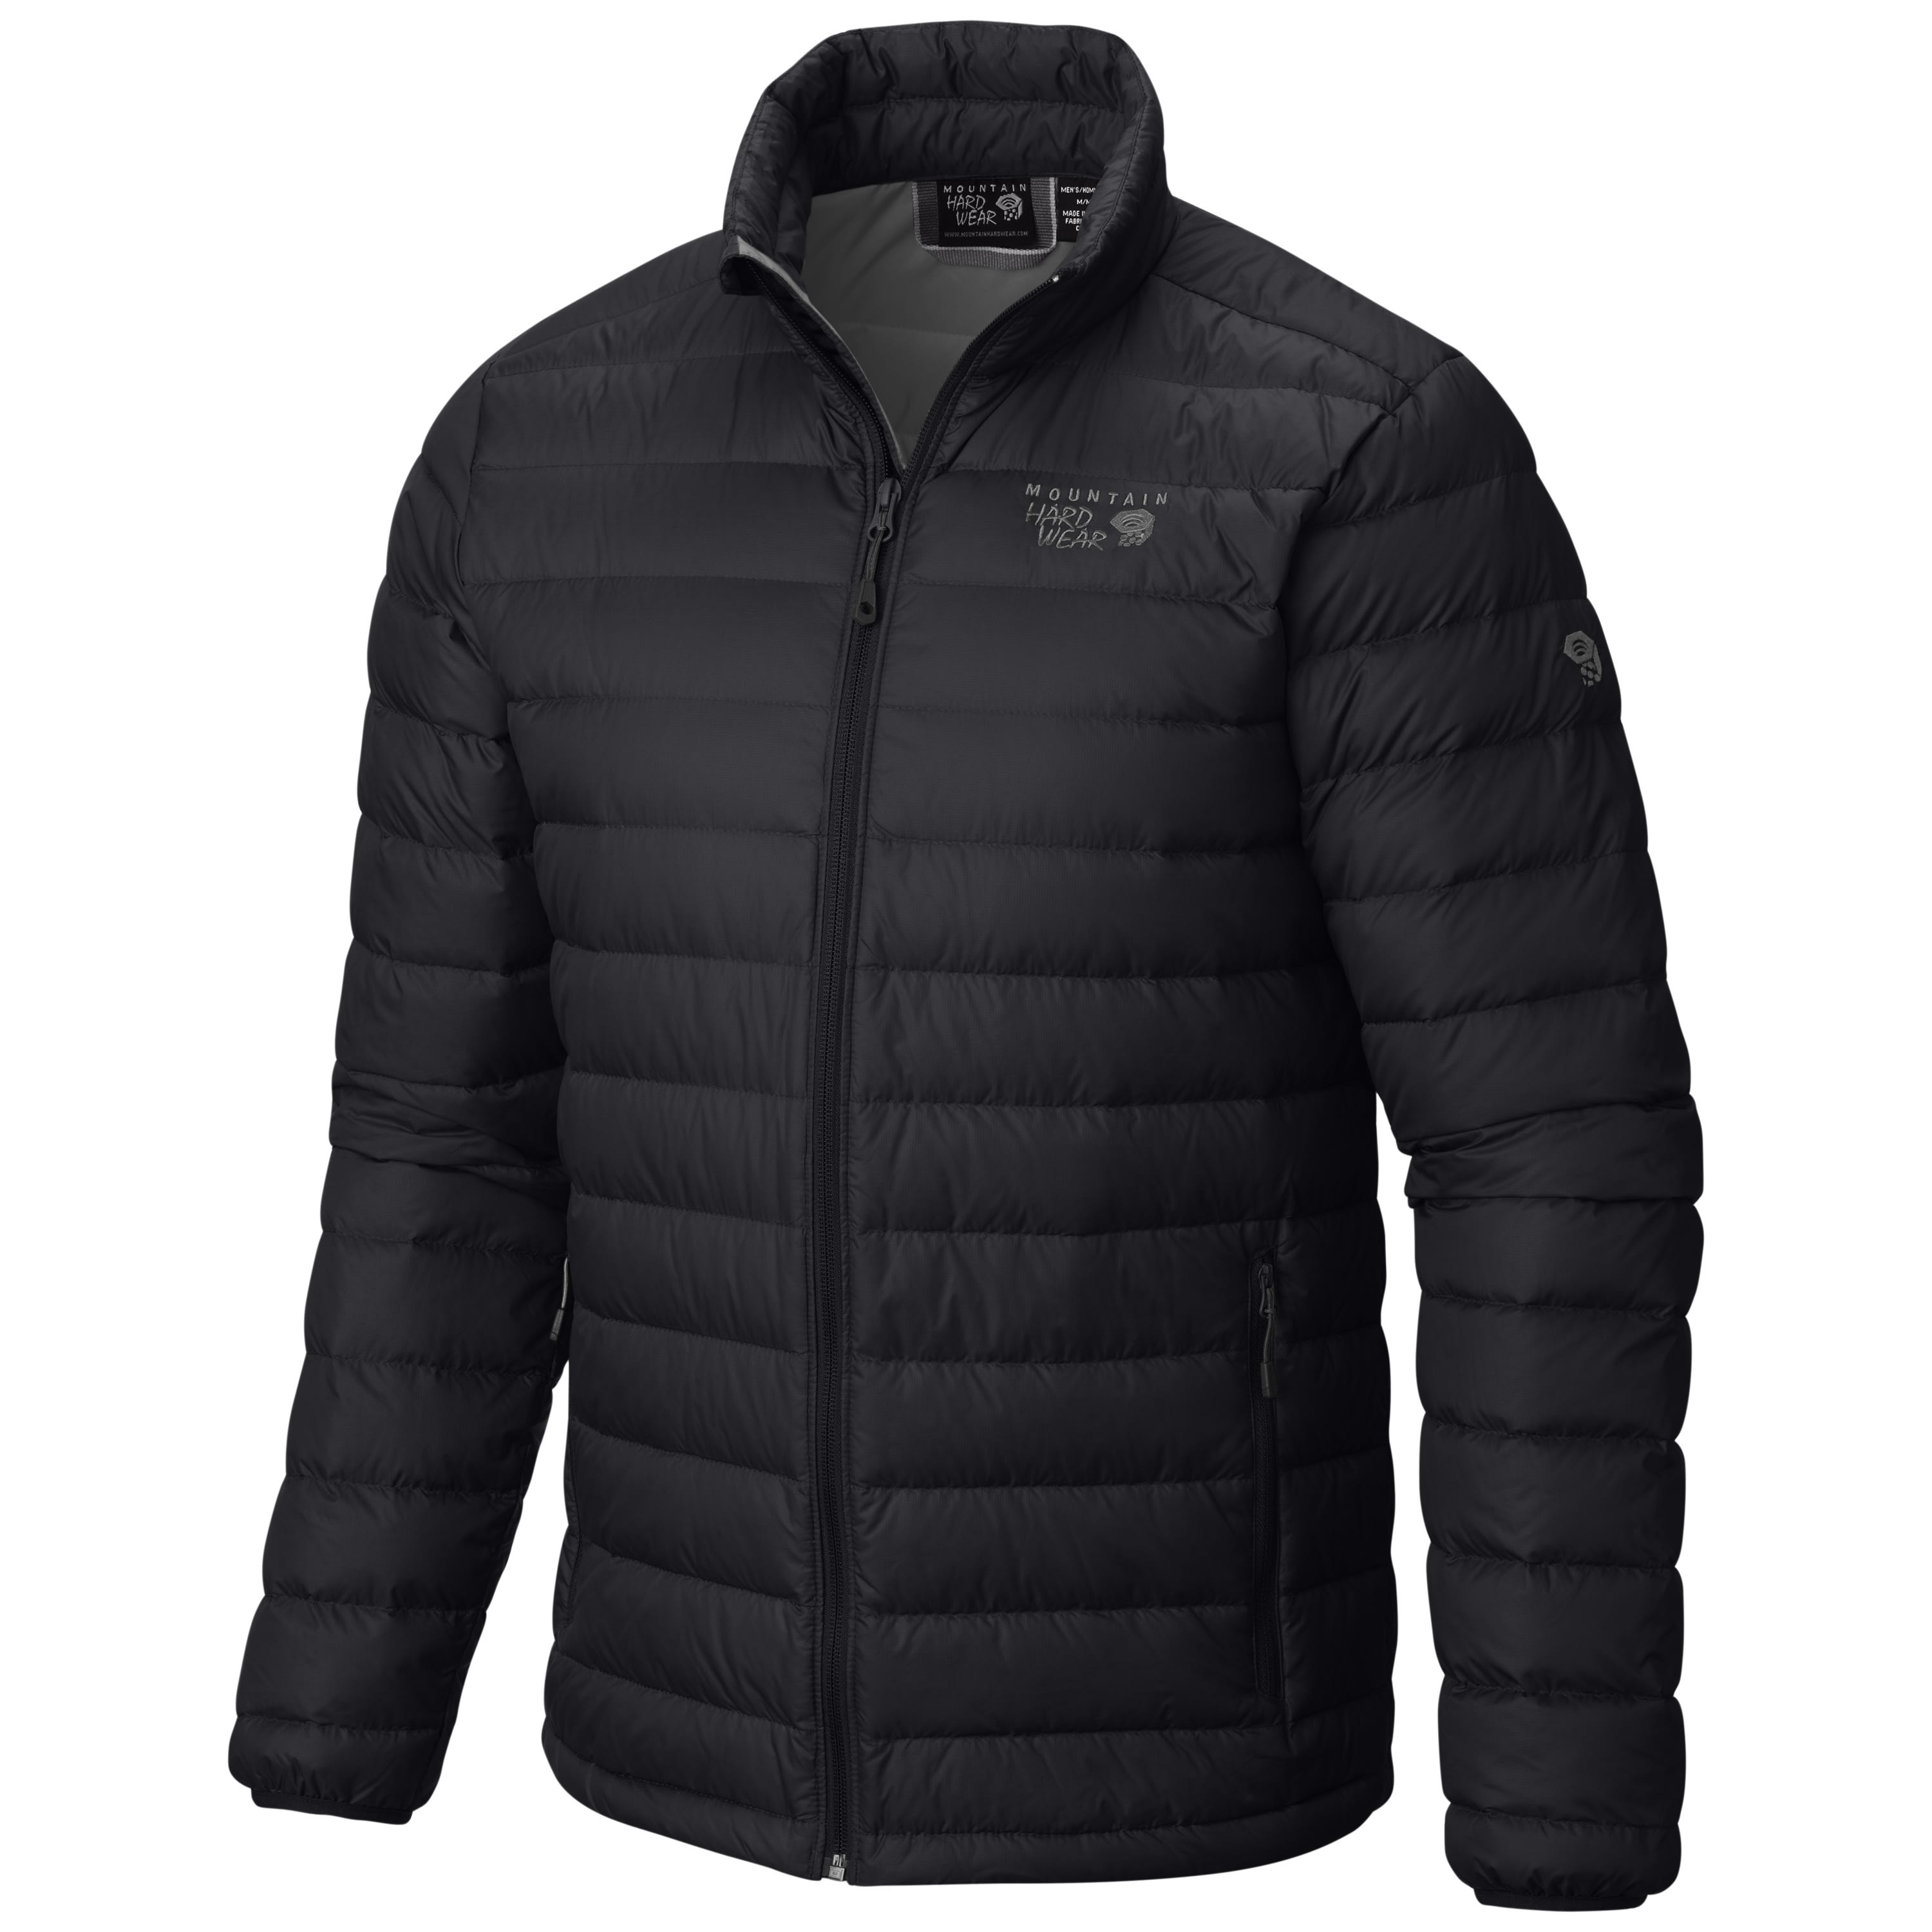 Image result for MOUNTAIN HARDWEAR jackets